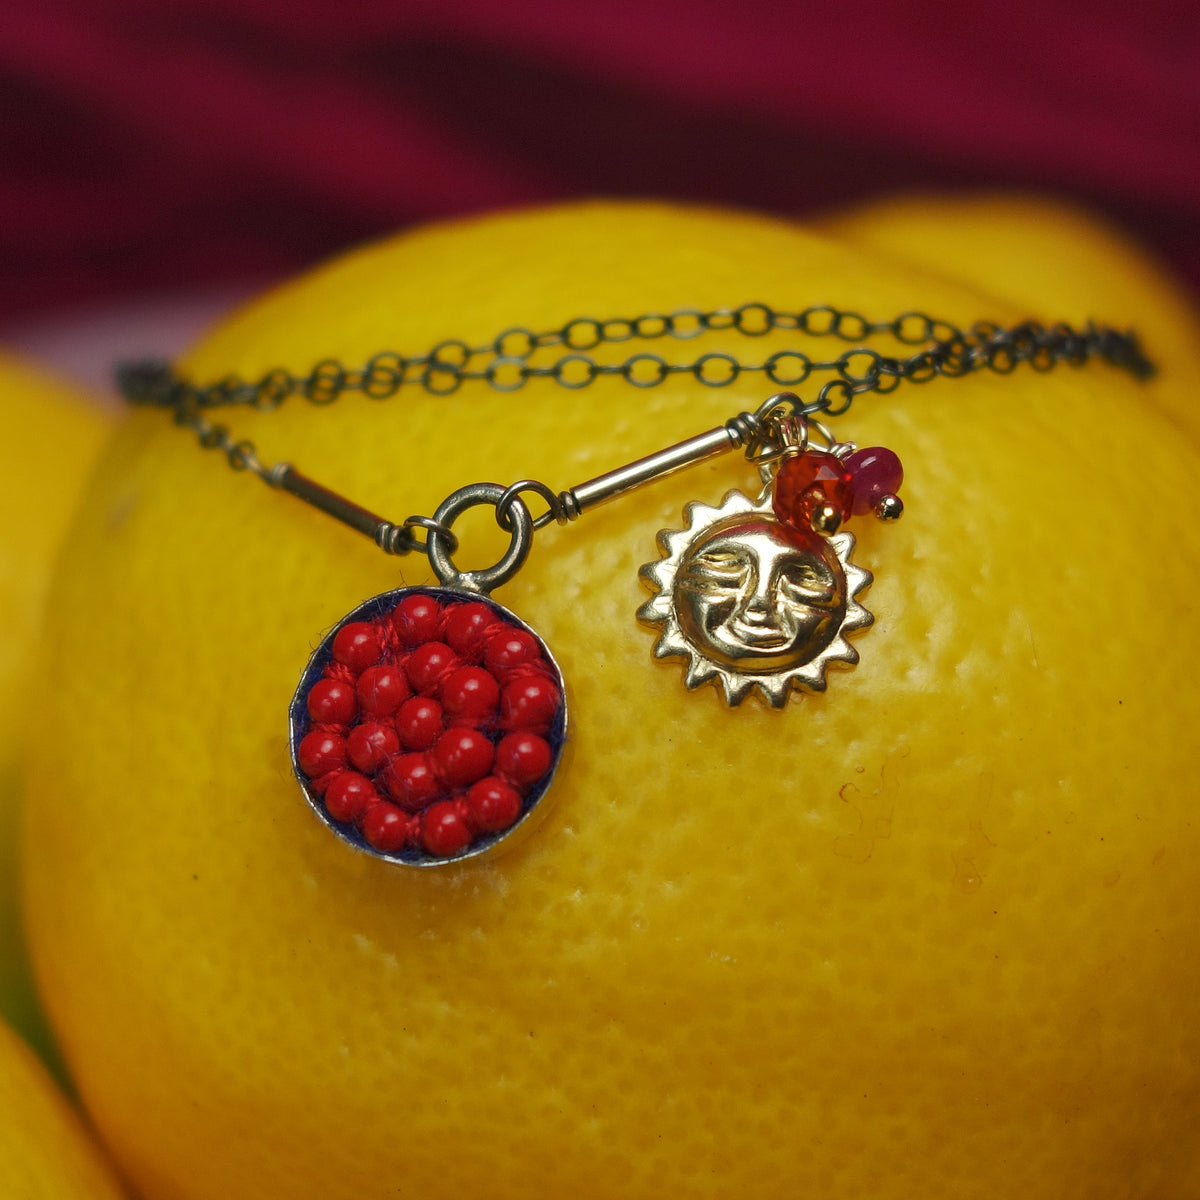 She's Walking on Sunshine: coral and gold mosaic necklace